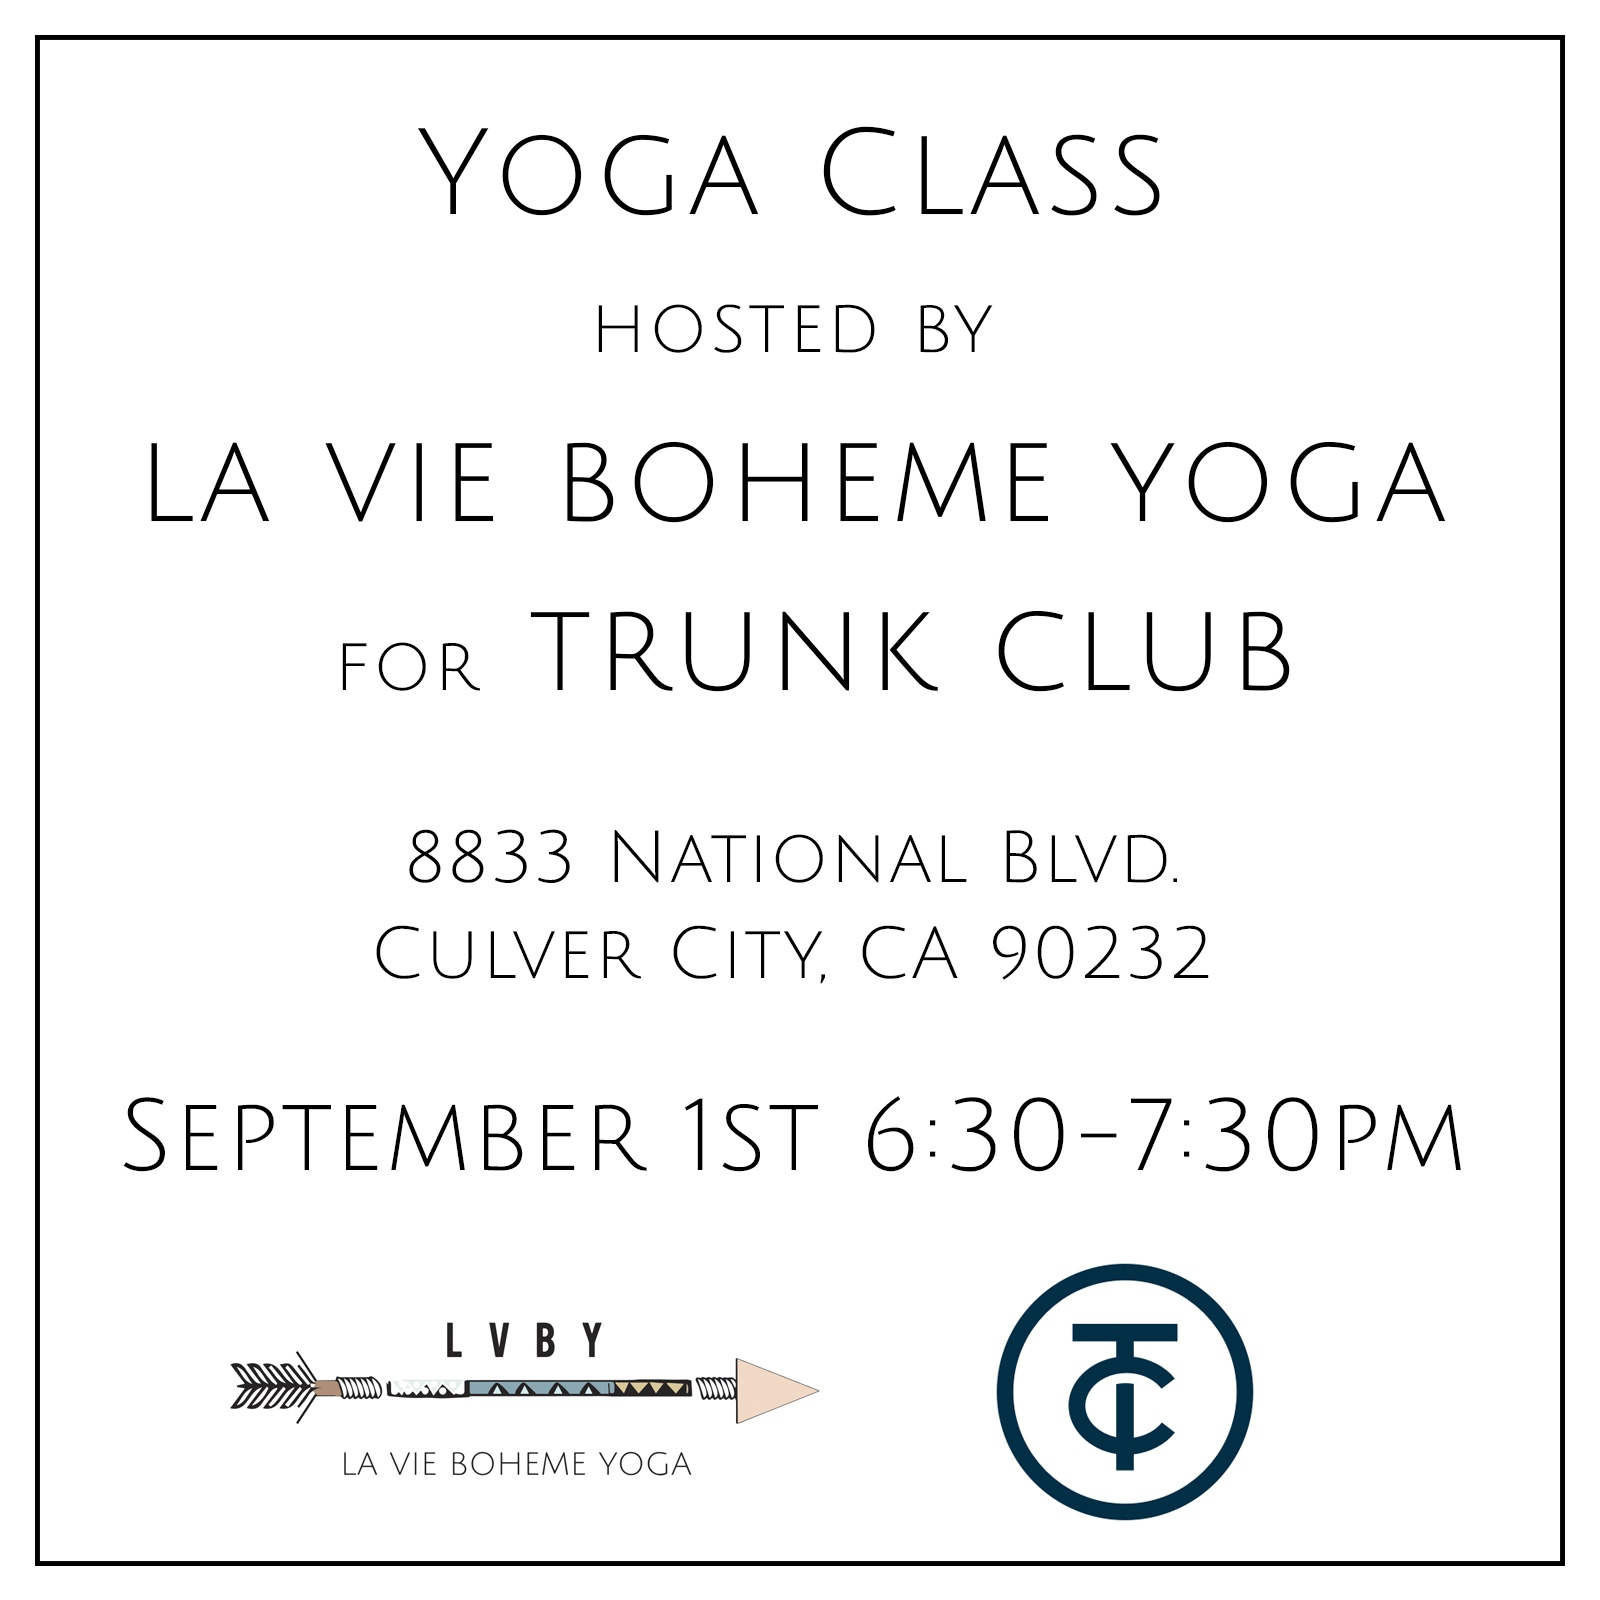 Corporate Yoga Hosted By LA VIE BOHEME YOGA For TRUNK CLUB